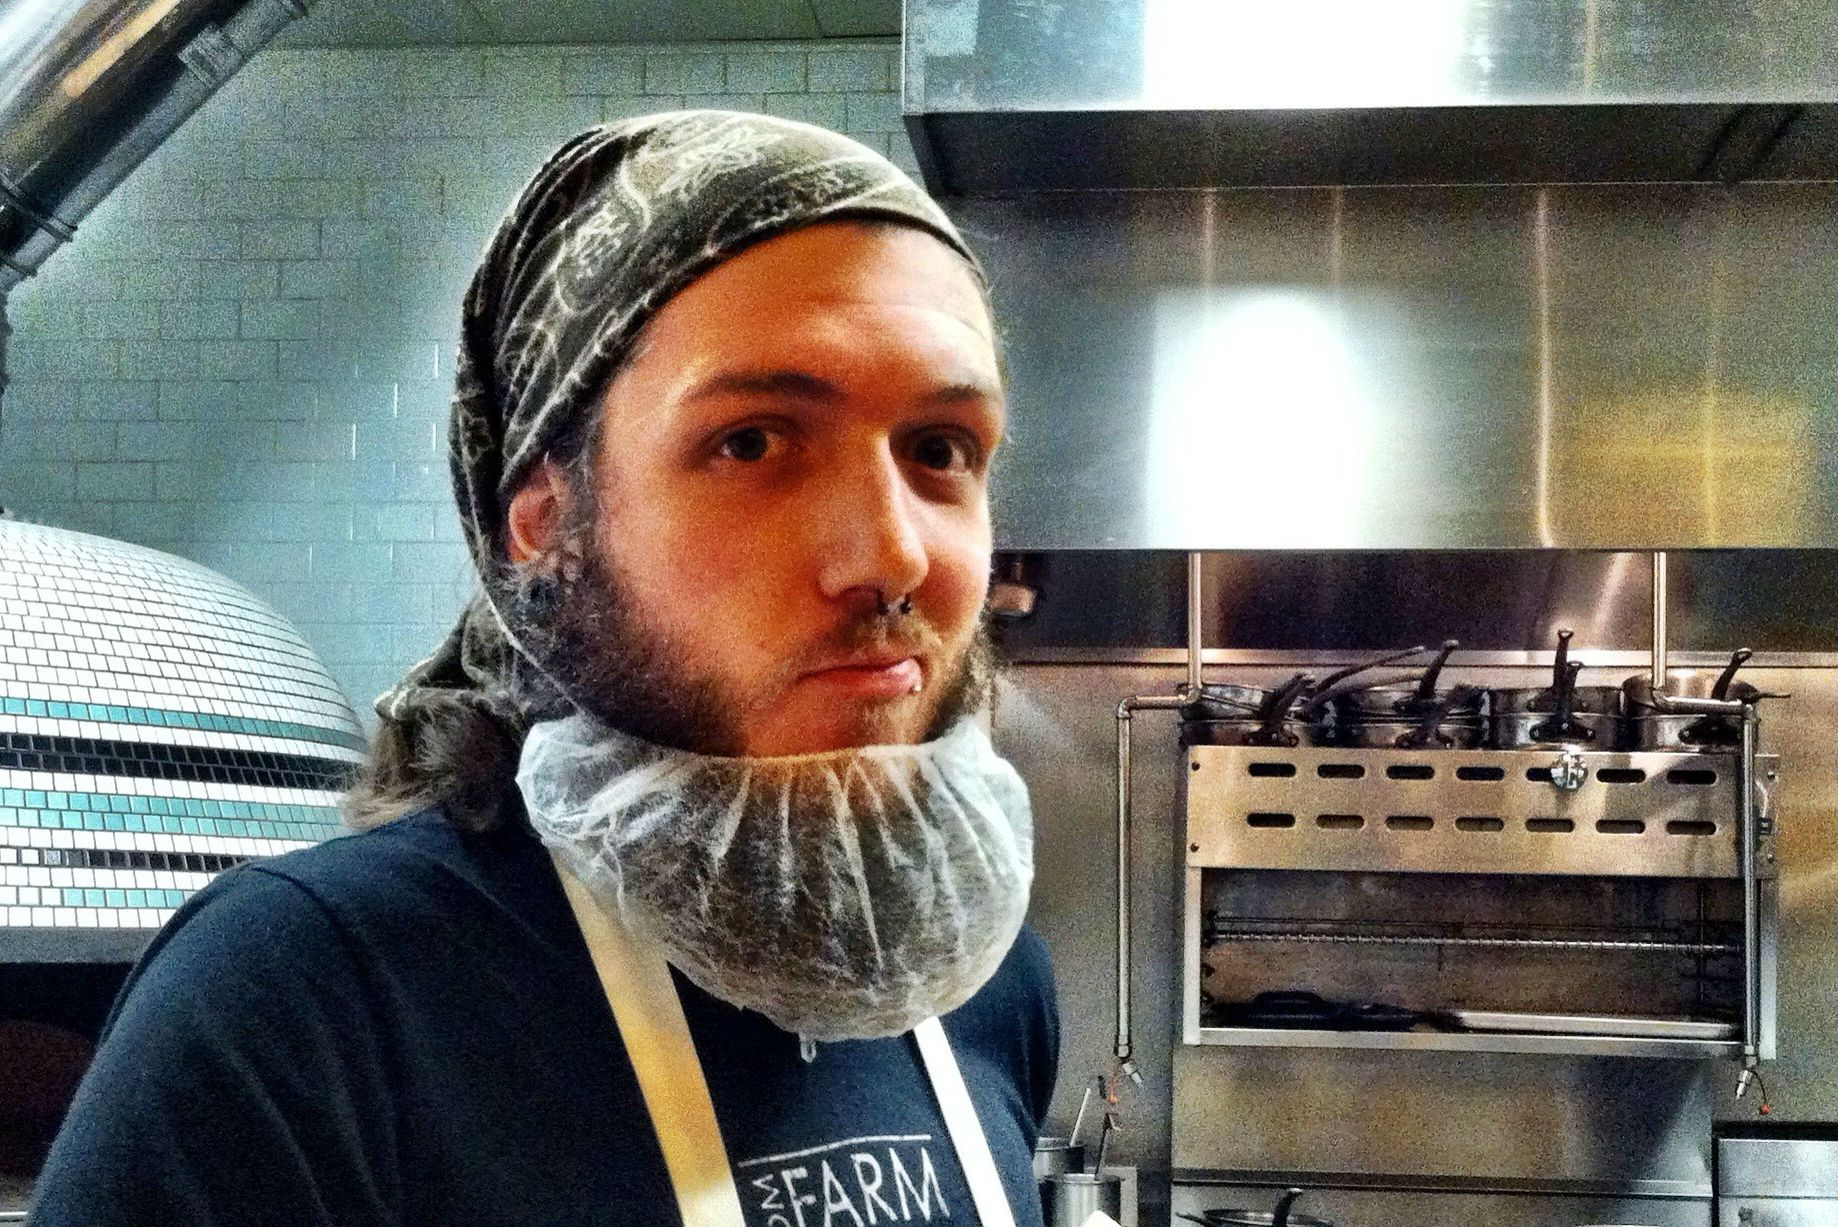 Your Cool Bearded Chef Should Be Wearing A Beard Net